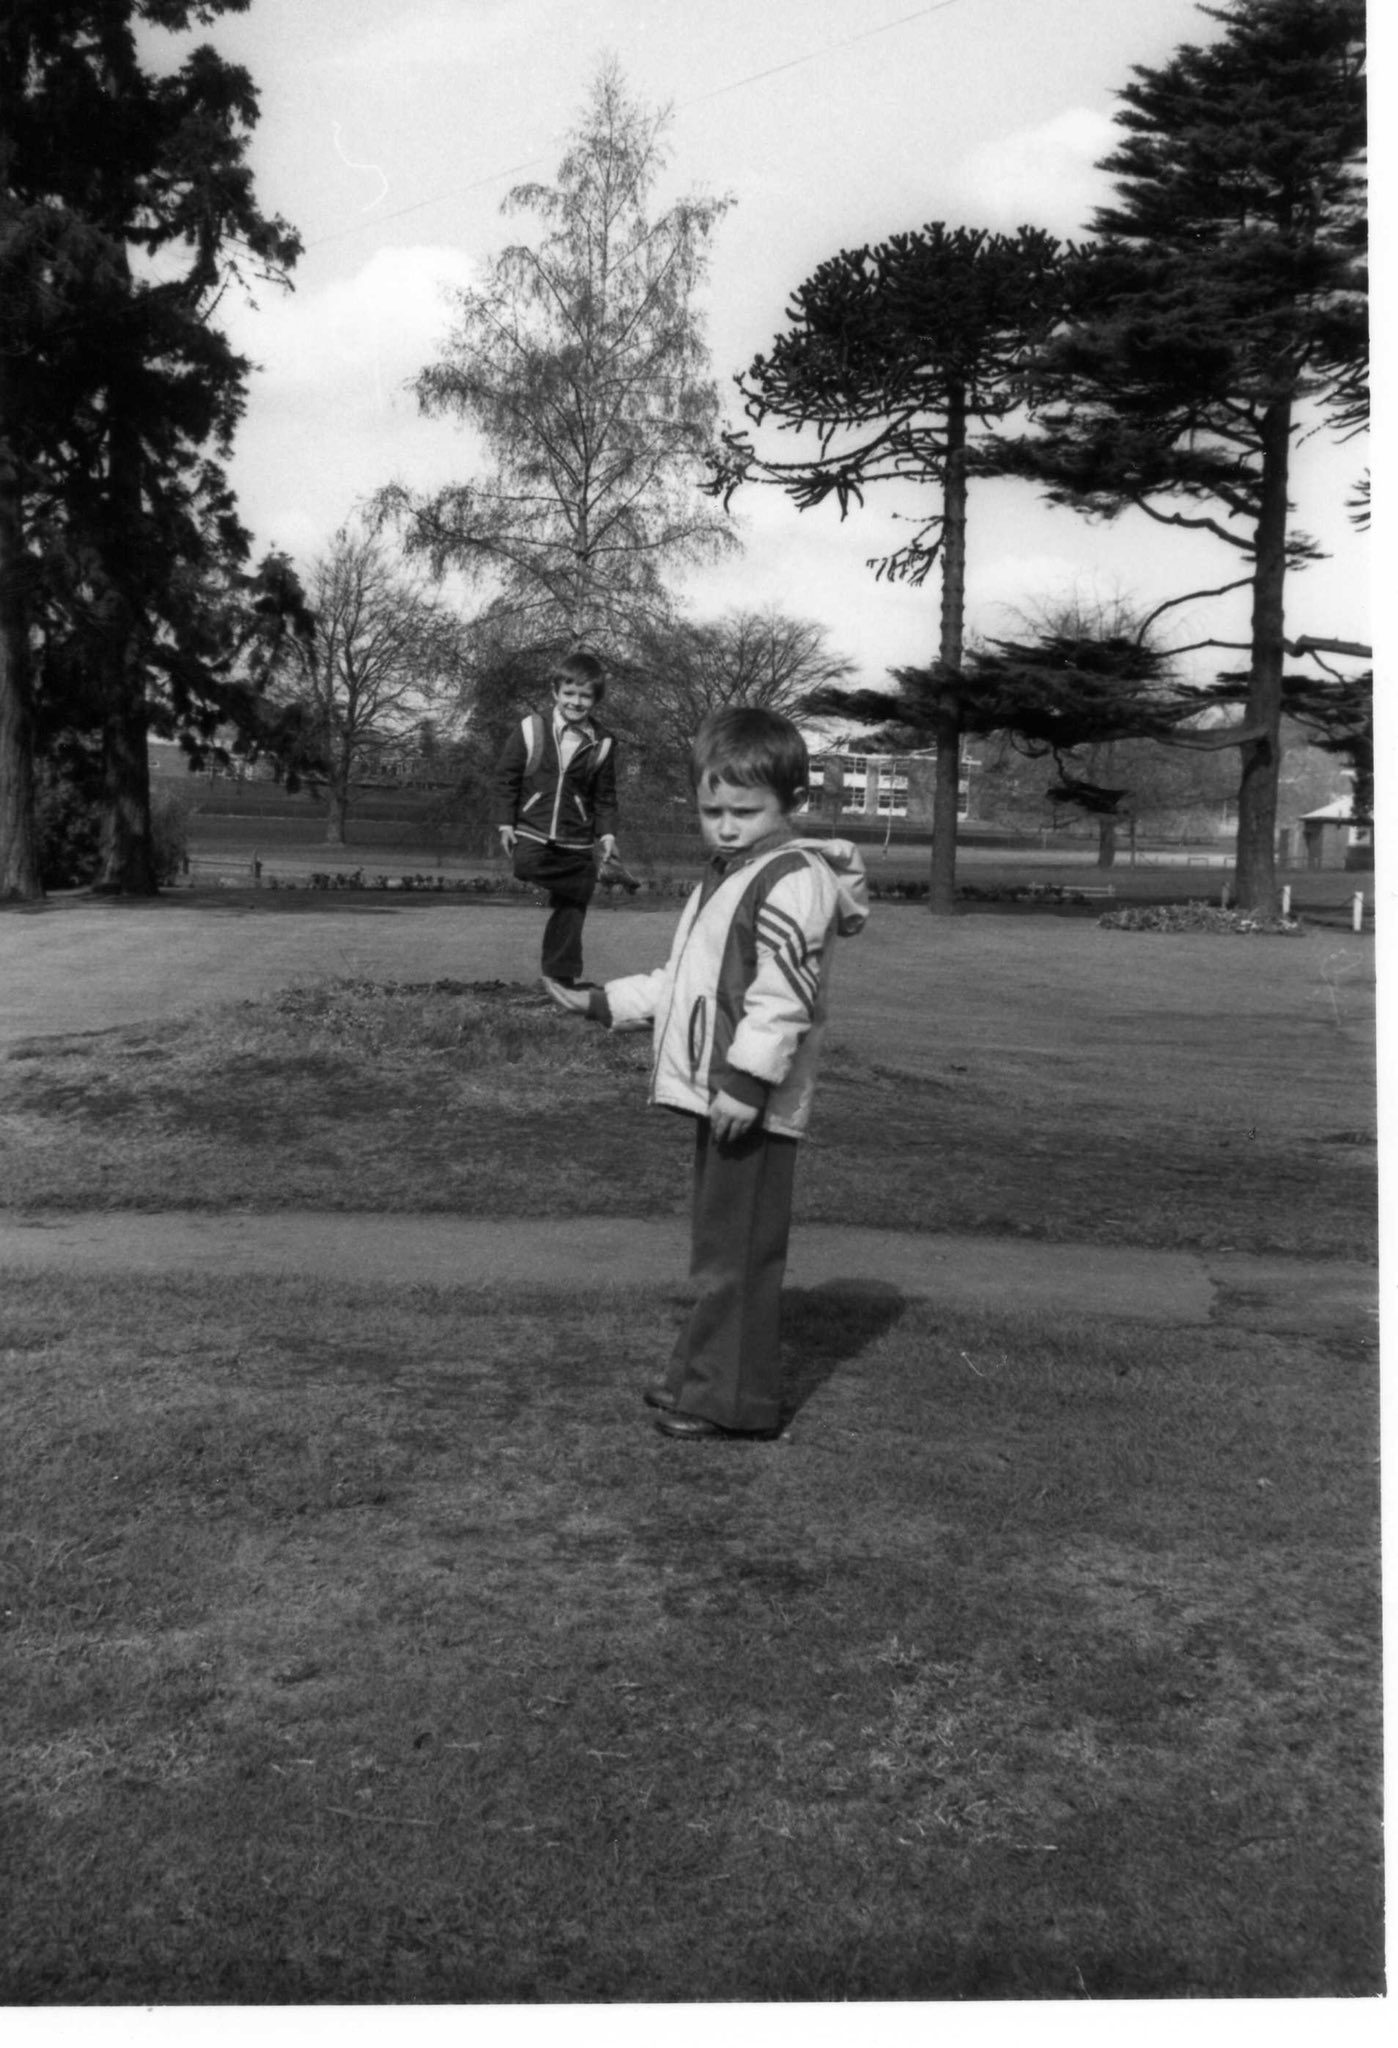 @daddlebrook Replying to @ILFORDPhoto Here's a pic of me from 1977 or 1978, a year or two after HP5 was launched I believe? And I'm reliably informed by my Dad that this is the only film he used back then. I'm the less than happy participant in the foreground.. #happiness (?) #fridayfavourites #ilfordphoto